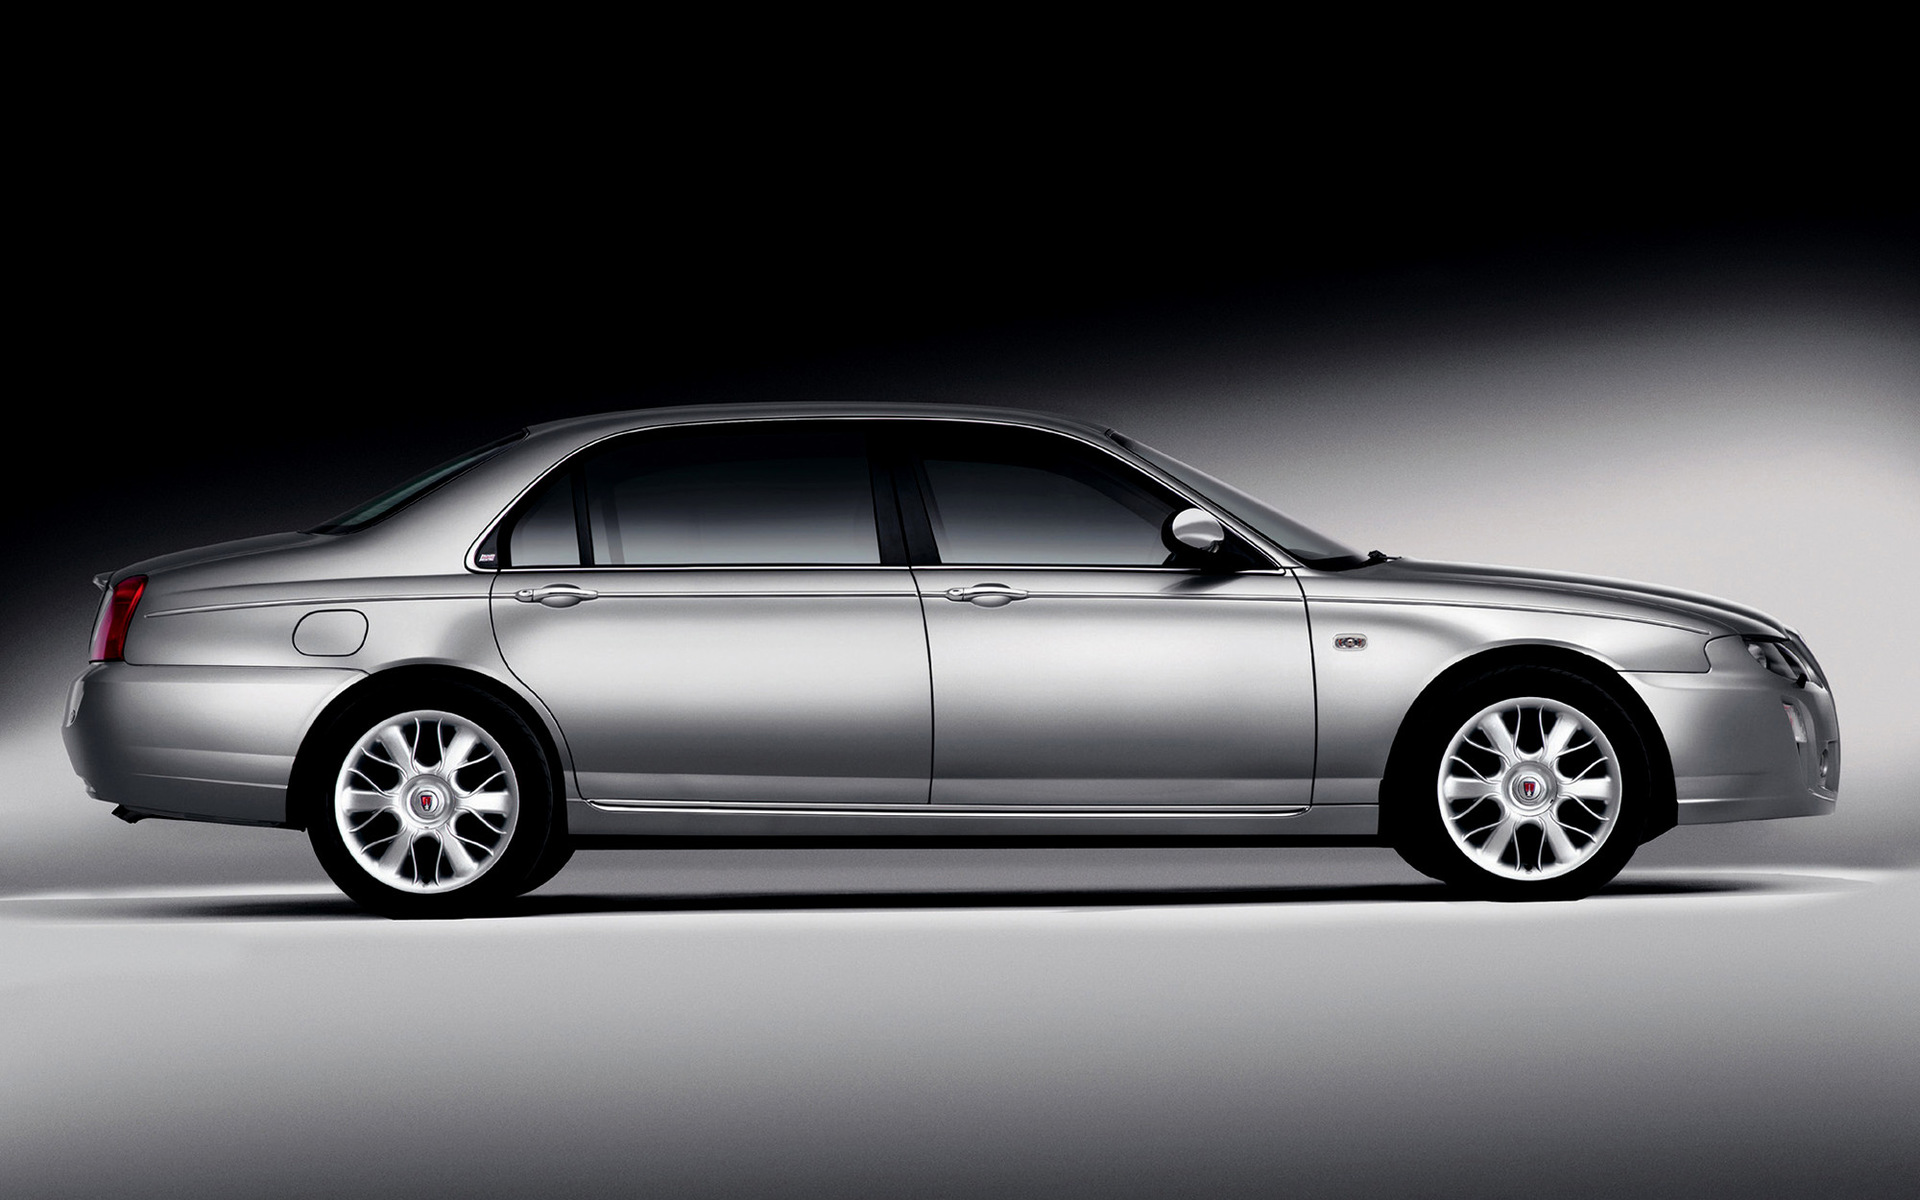 Rolls Royce Limo >> Rover 75 Limousine (2004) Wallpapers and HD Images - Car Pixel